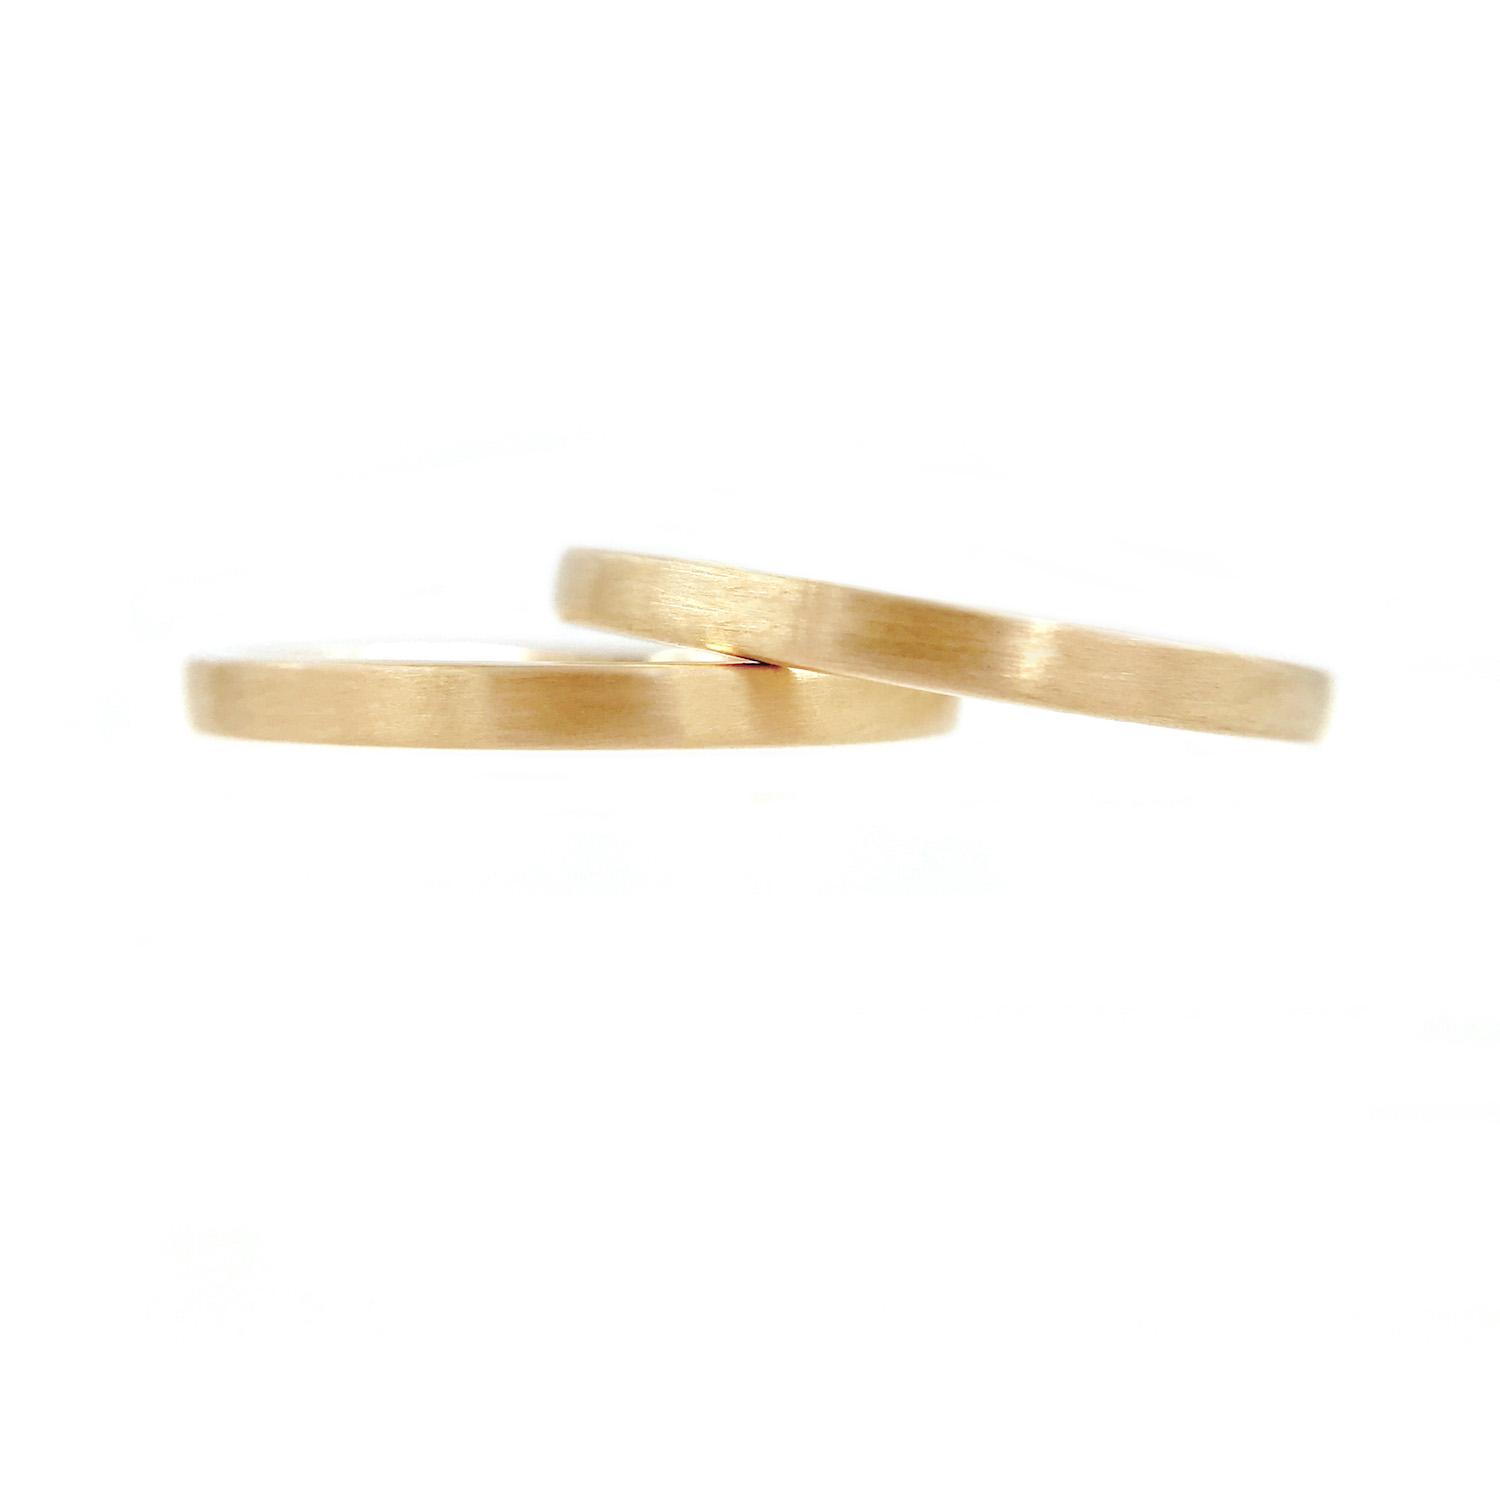 44Chic-square-2mm-Satin-Gold-Band-Ring-Guard-Spacer-14k-18k_7813